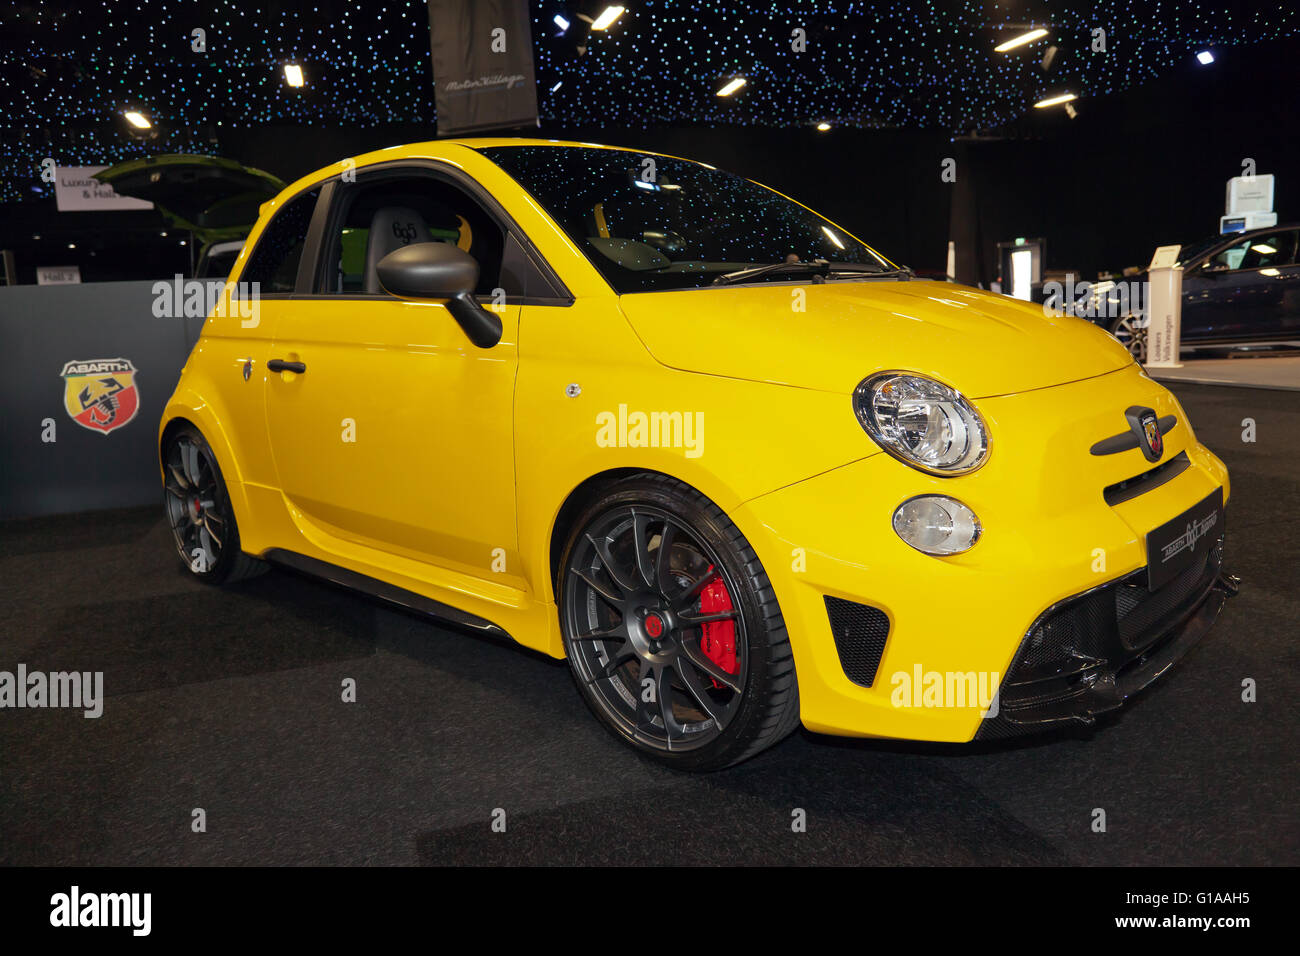 fiat 500 abarth stockfotos fiat 500 abarth bilder alamy. Black Bedroom Furniture Sets. Home Design Ideas